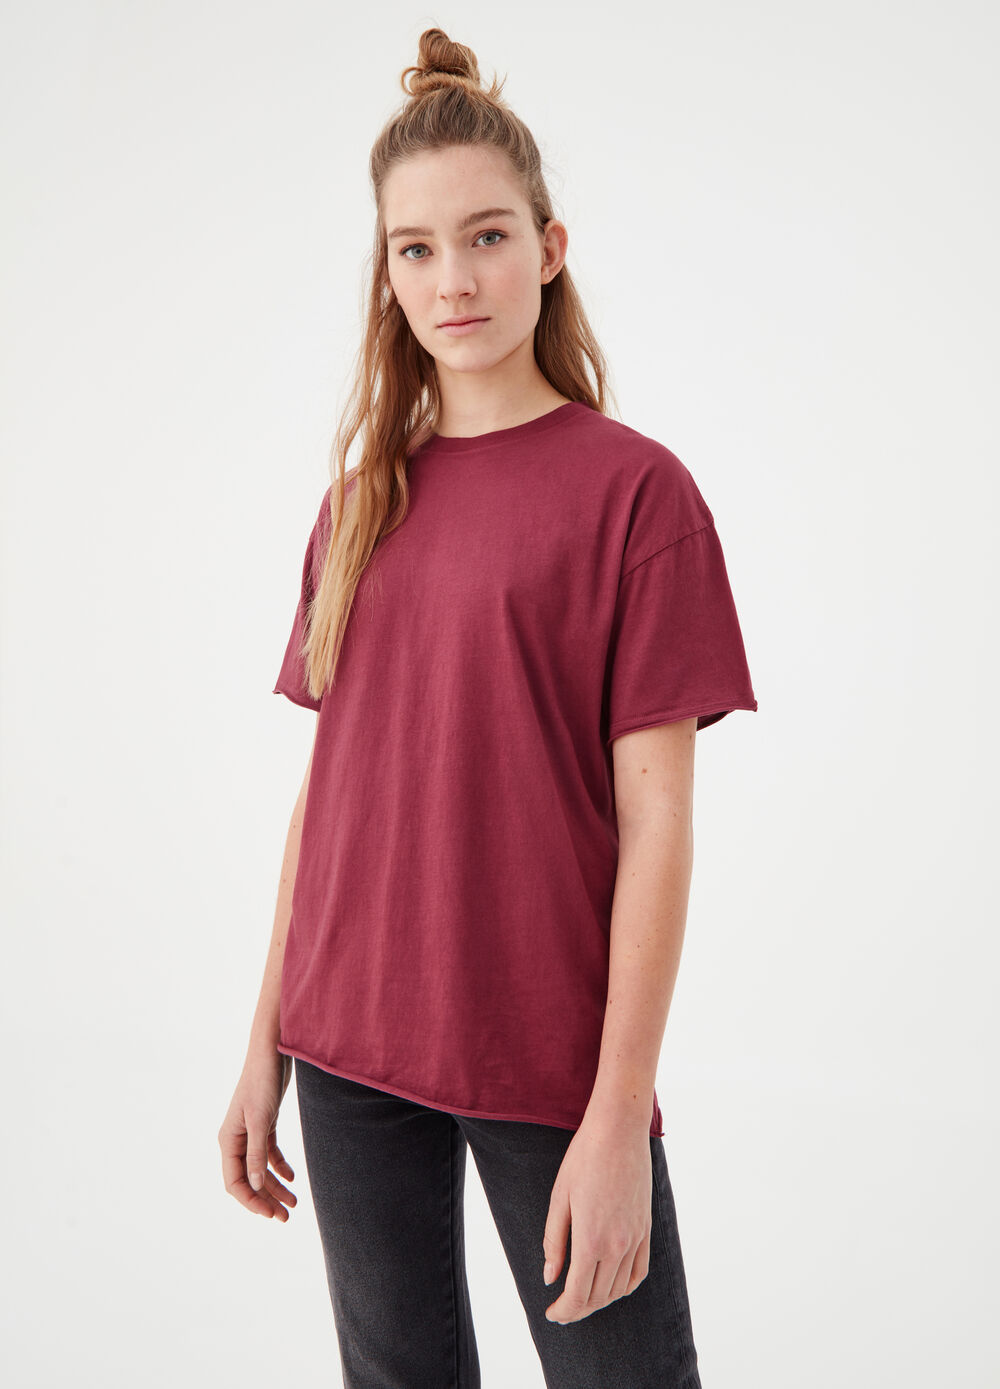 BCI 100% cotton T-shirt with round neck